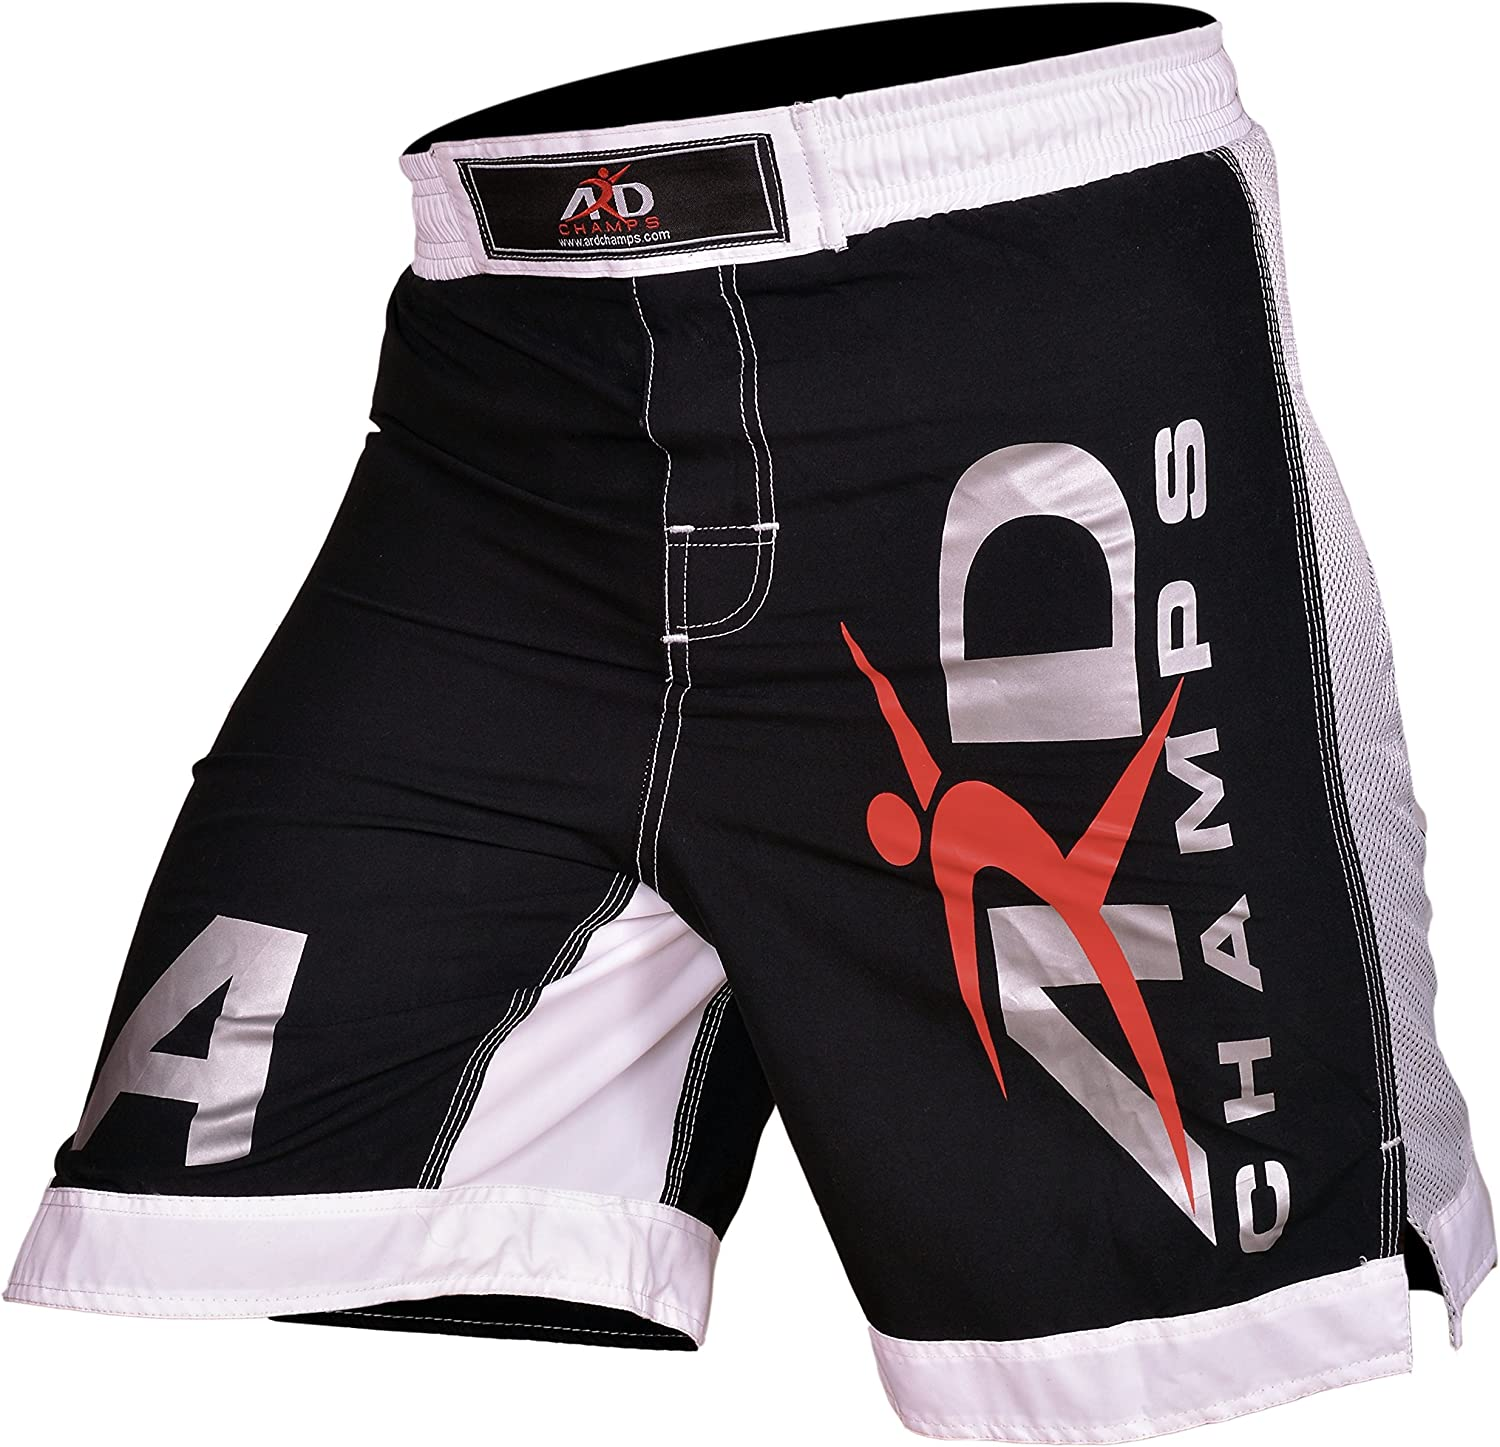 ARD New Deluxe Extreme MMA 2021 autumn and winter new Fight Shorts Cage T Grappling UFC Muay